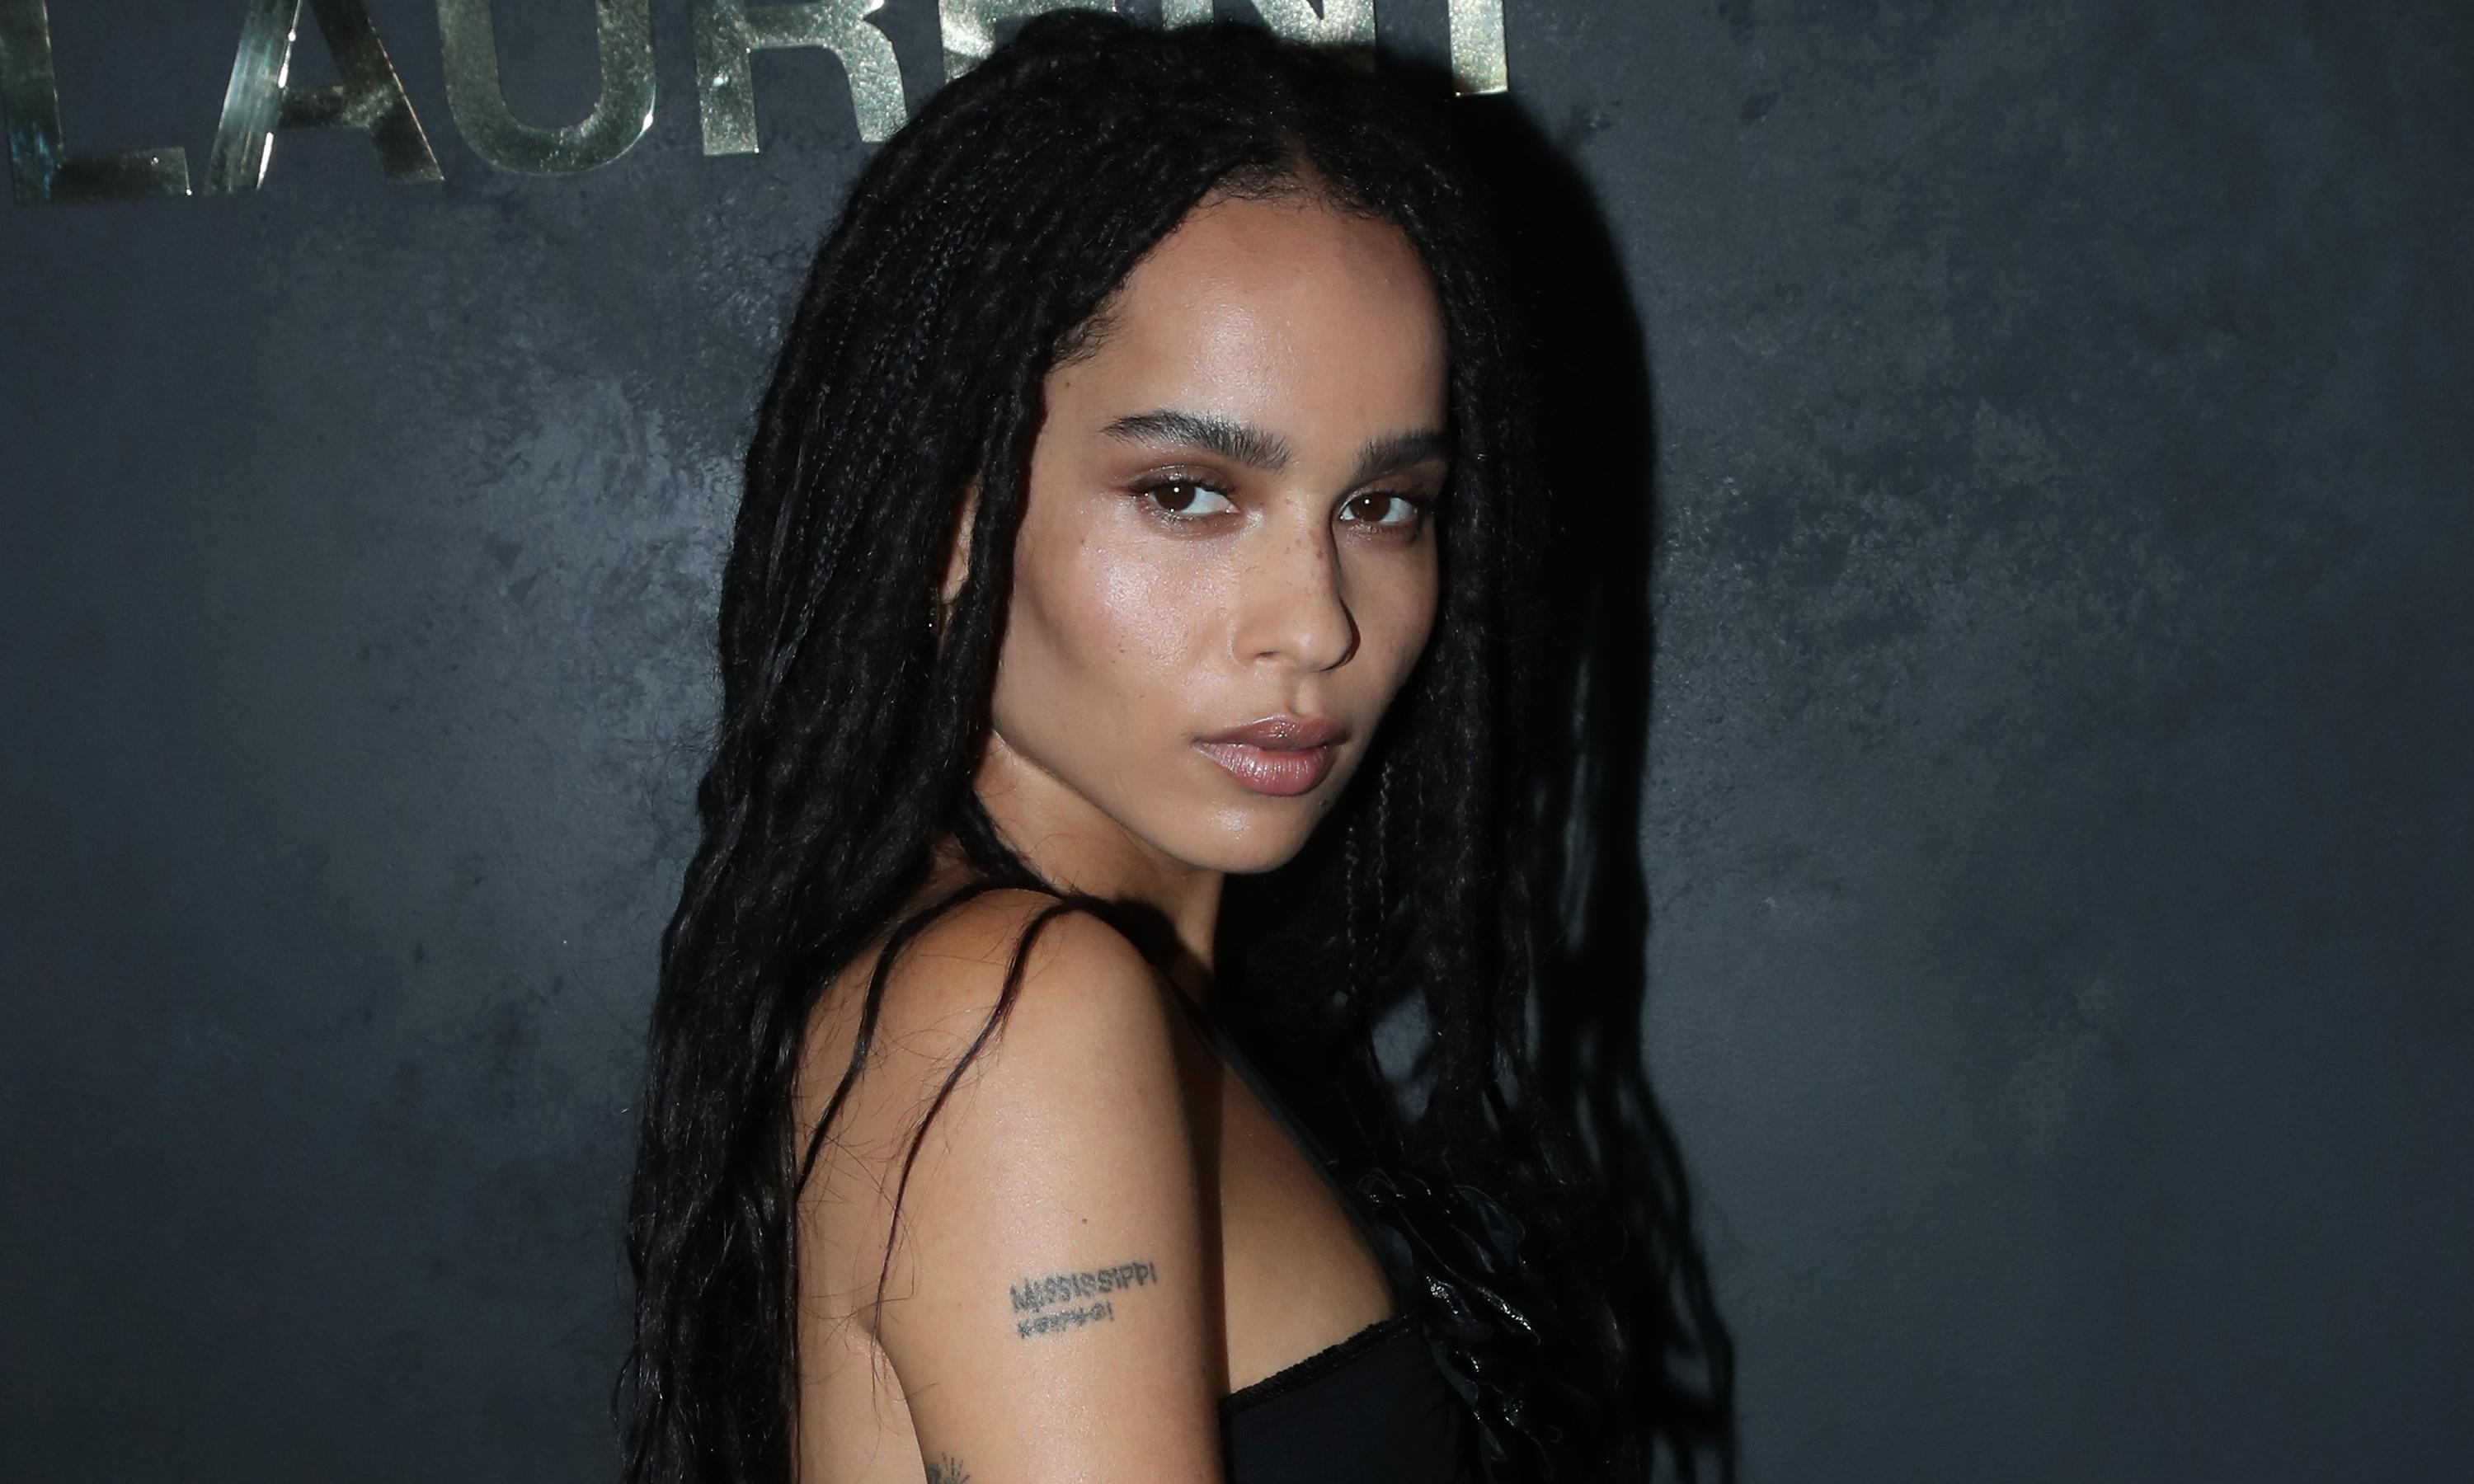 Zoë Kravitz to play Catwoman opposite Robert Pattinson's Batman